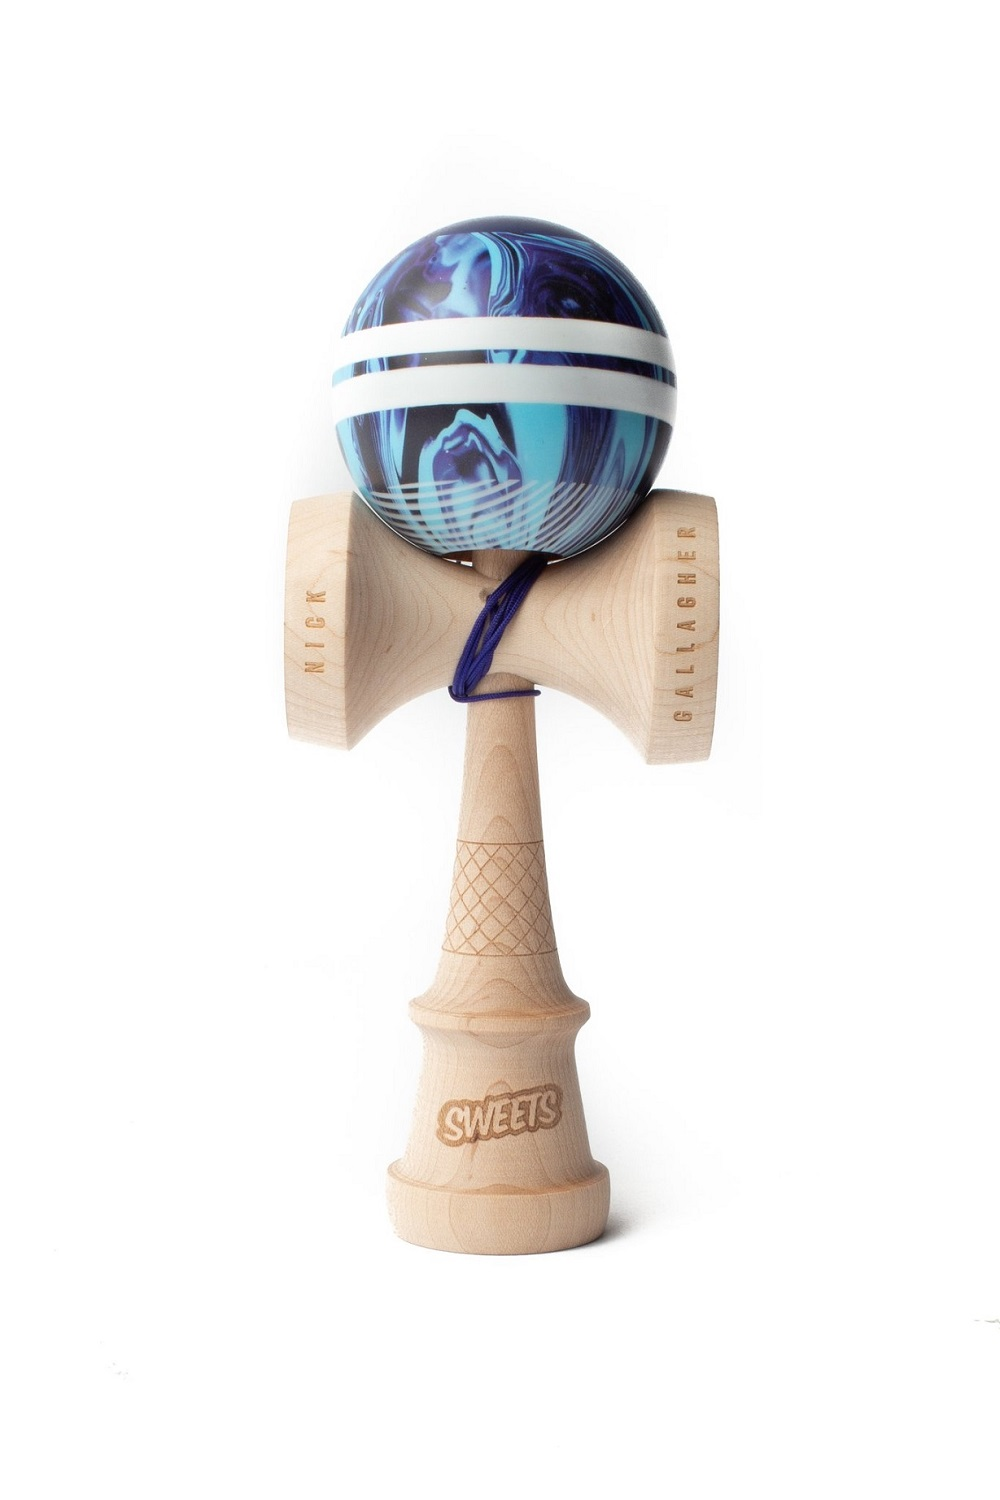 Sweets Kendamas - Nick Gallagher - BOOST - Cushion